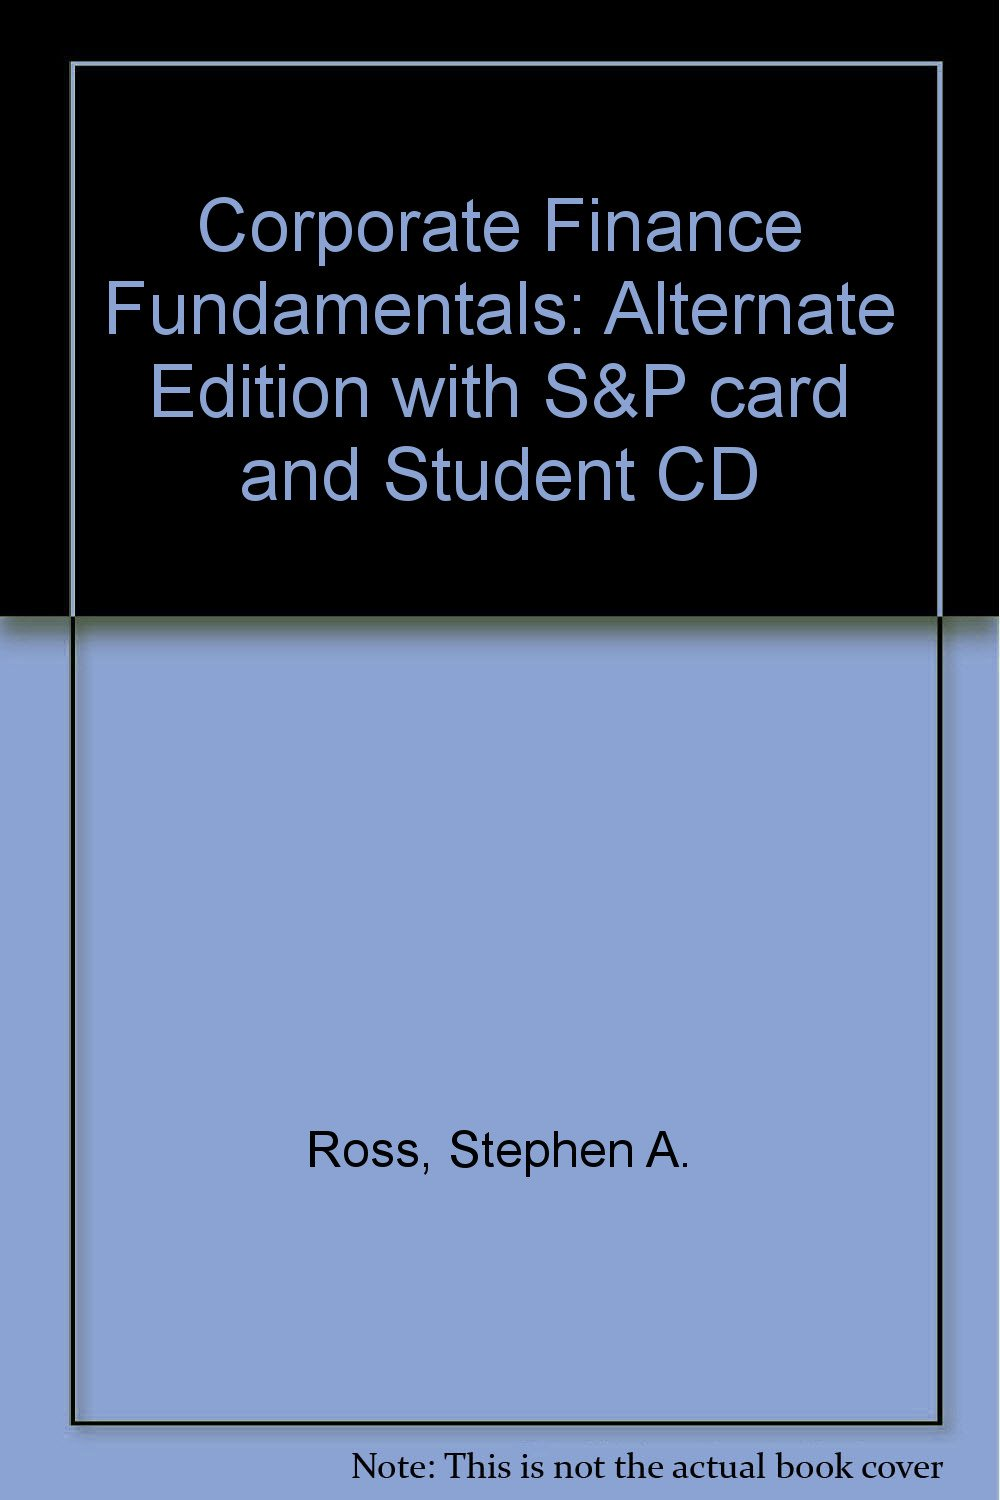 Corporate Finance Fundamentals: Alternate Edition with S&P card and Student CD PDF